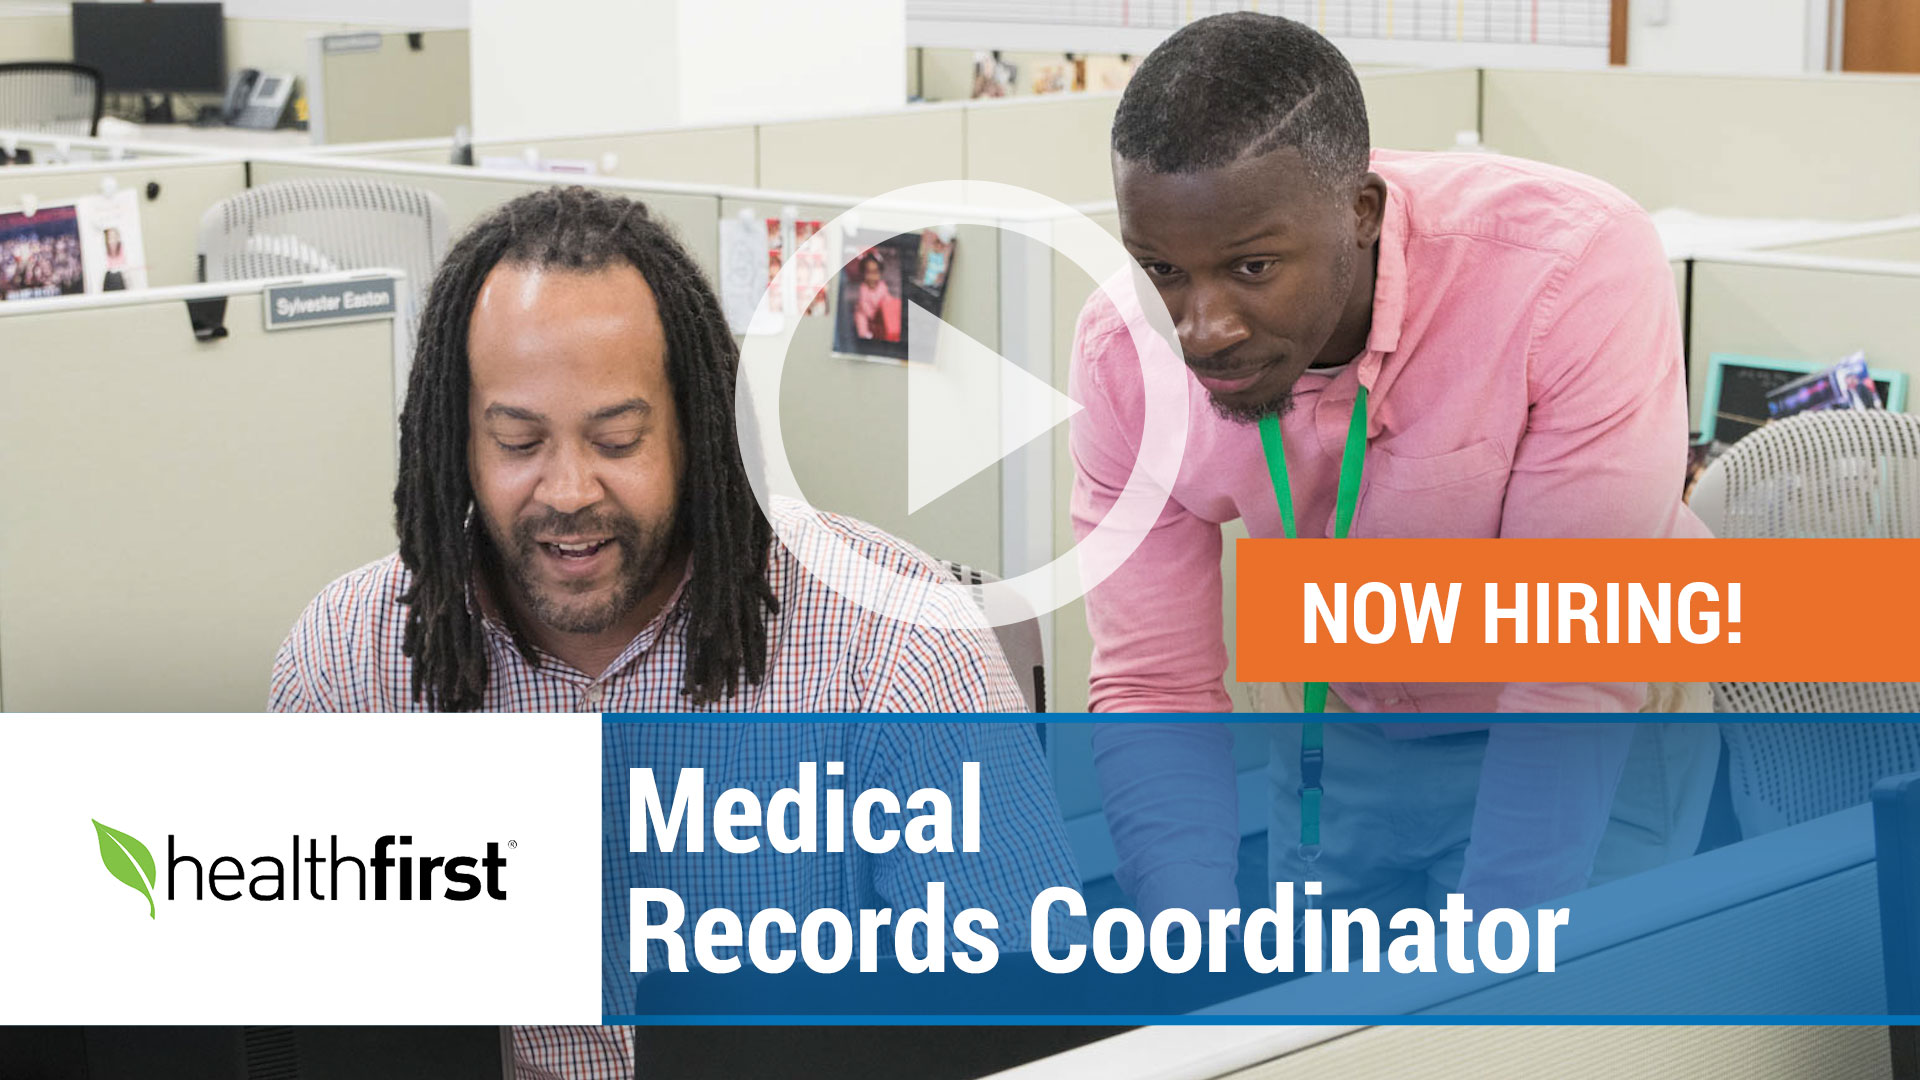 Watch our careers video for available job opening Medical Records Coordinator in New York, NY, USA